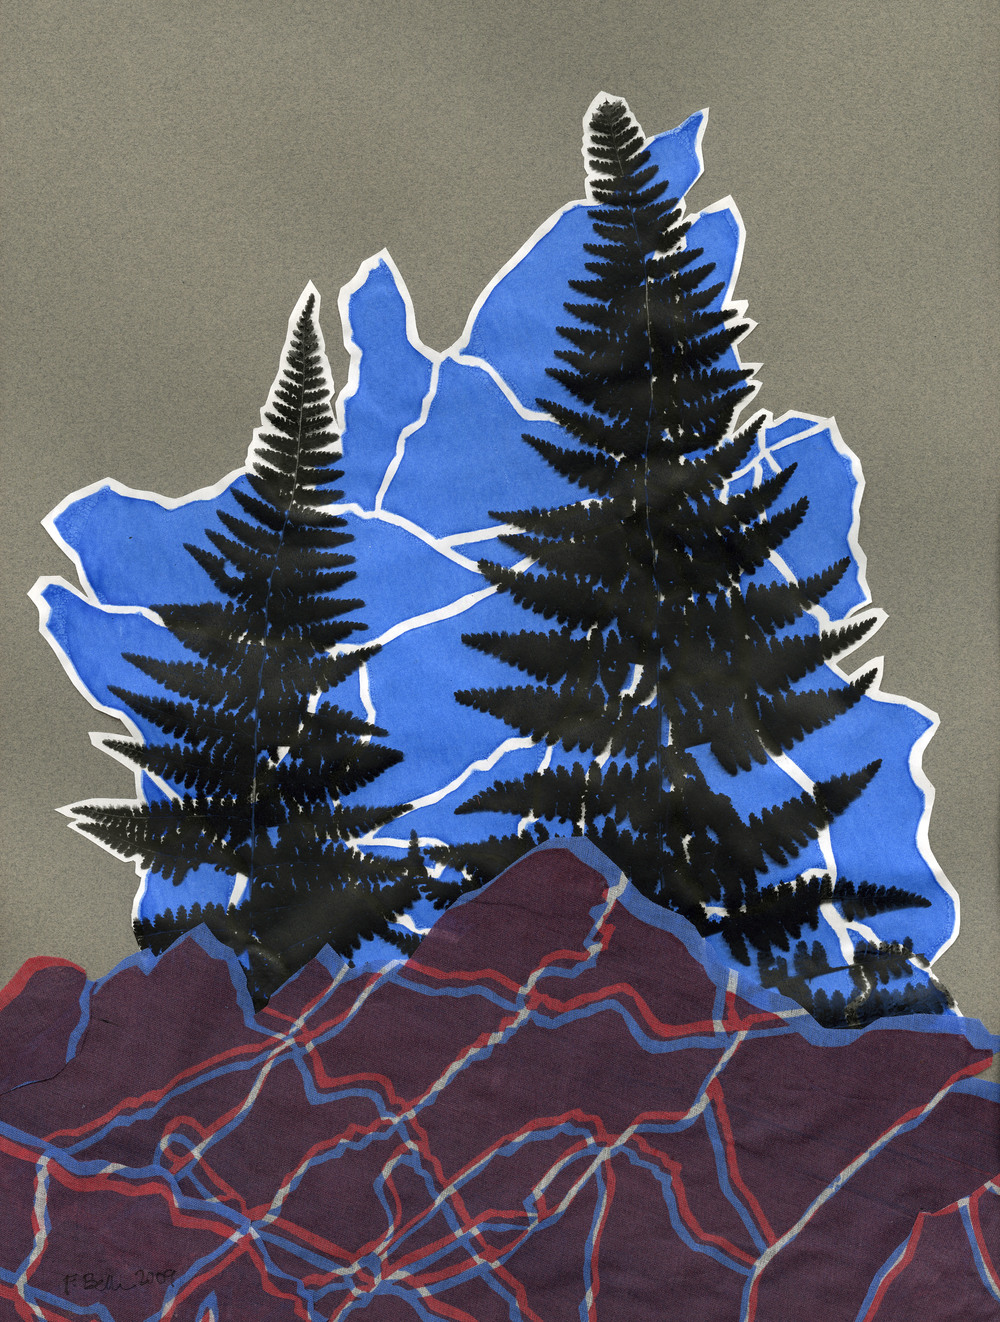 Hightop Mtn Fern.jpg